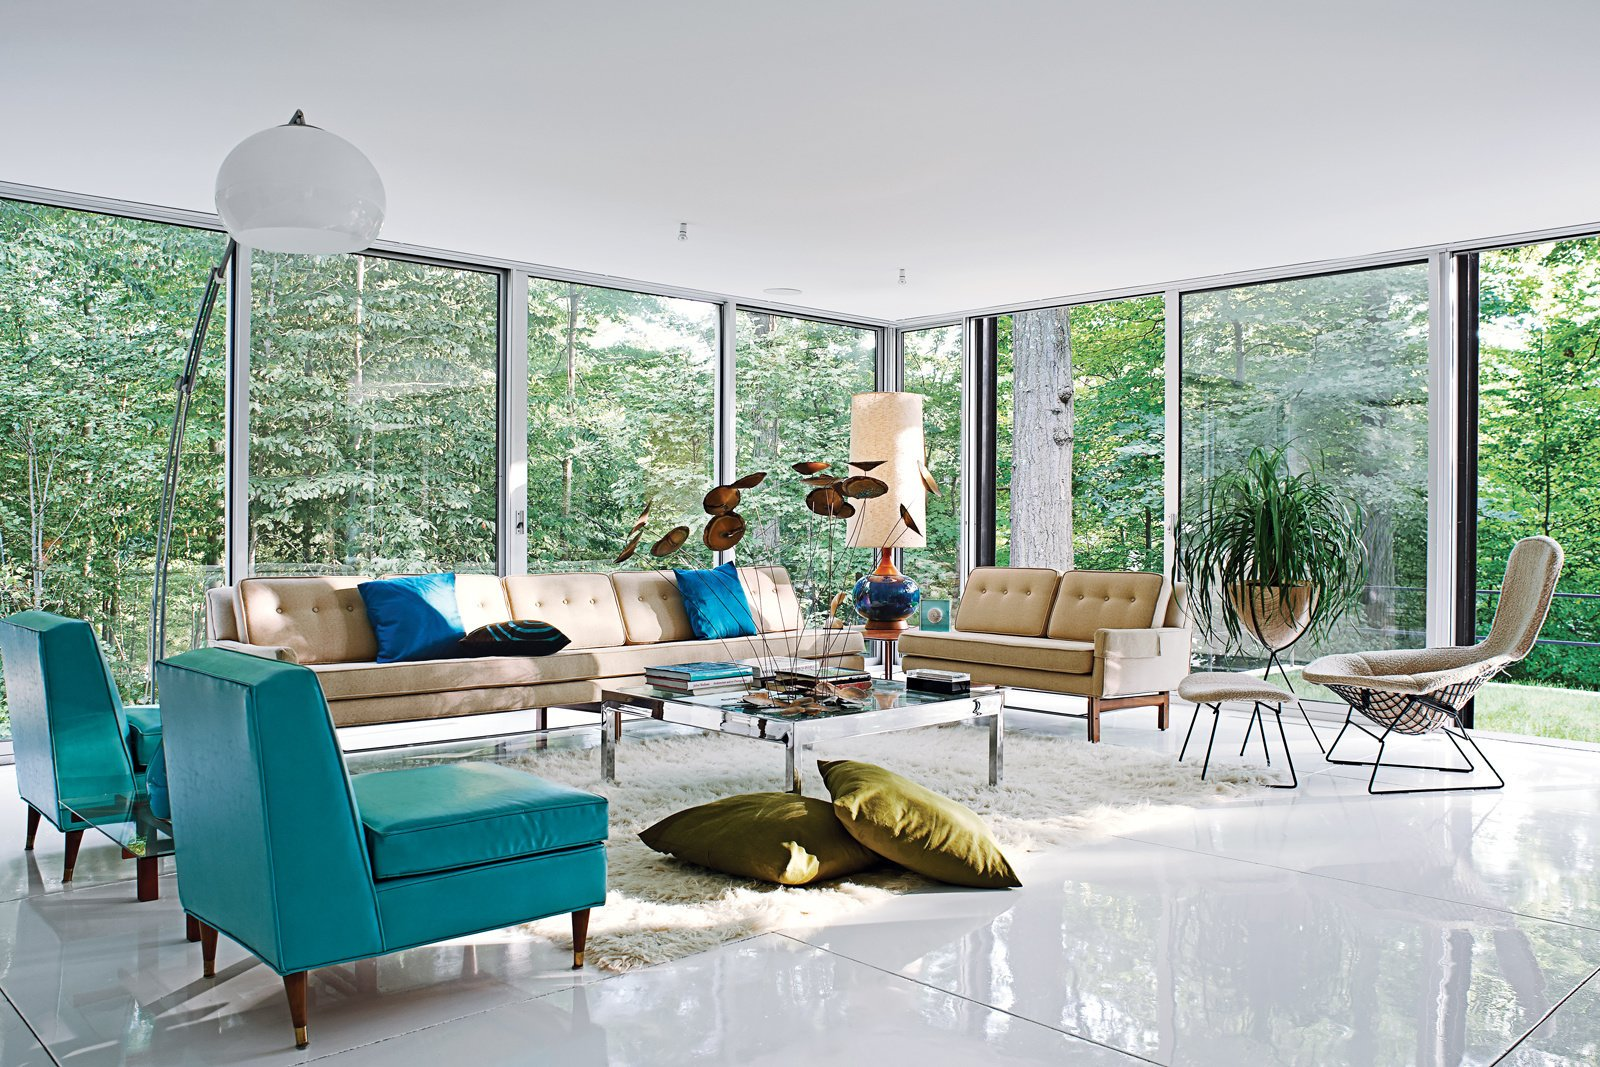 The spacious living room, filled with vintage furnishings by Harry Bertoia, Paul McCobb, overlooks the heavily wooded site, which adjoins a protected watershed. Photo by: Jason Schmidt